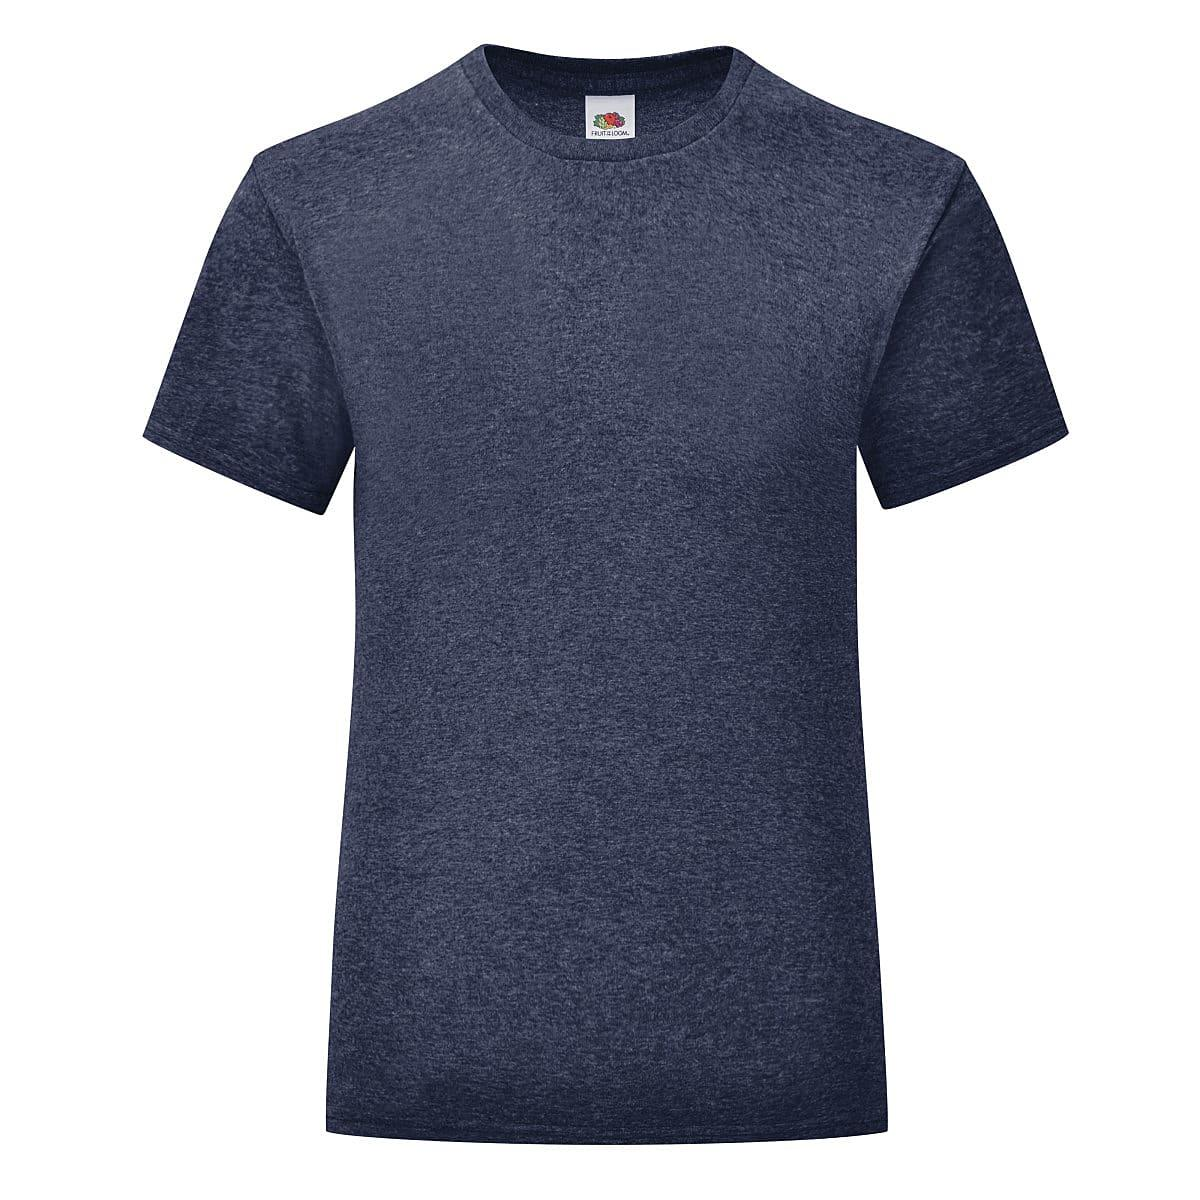 Fruit Of The Loom Girls Iconic T-Shirt in Vintage Heather Navy (Product Code: 61025)